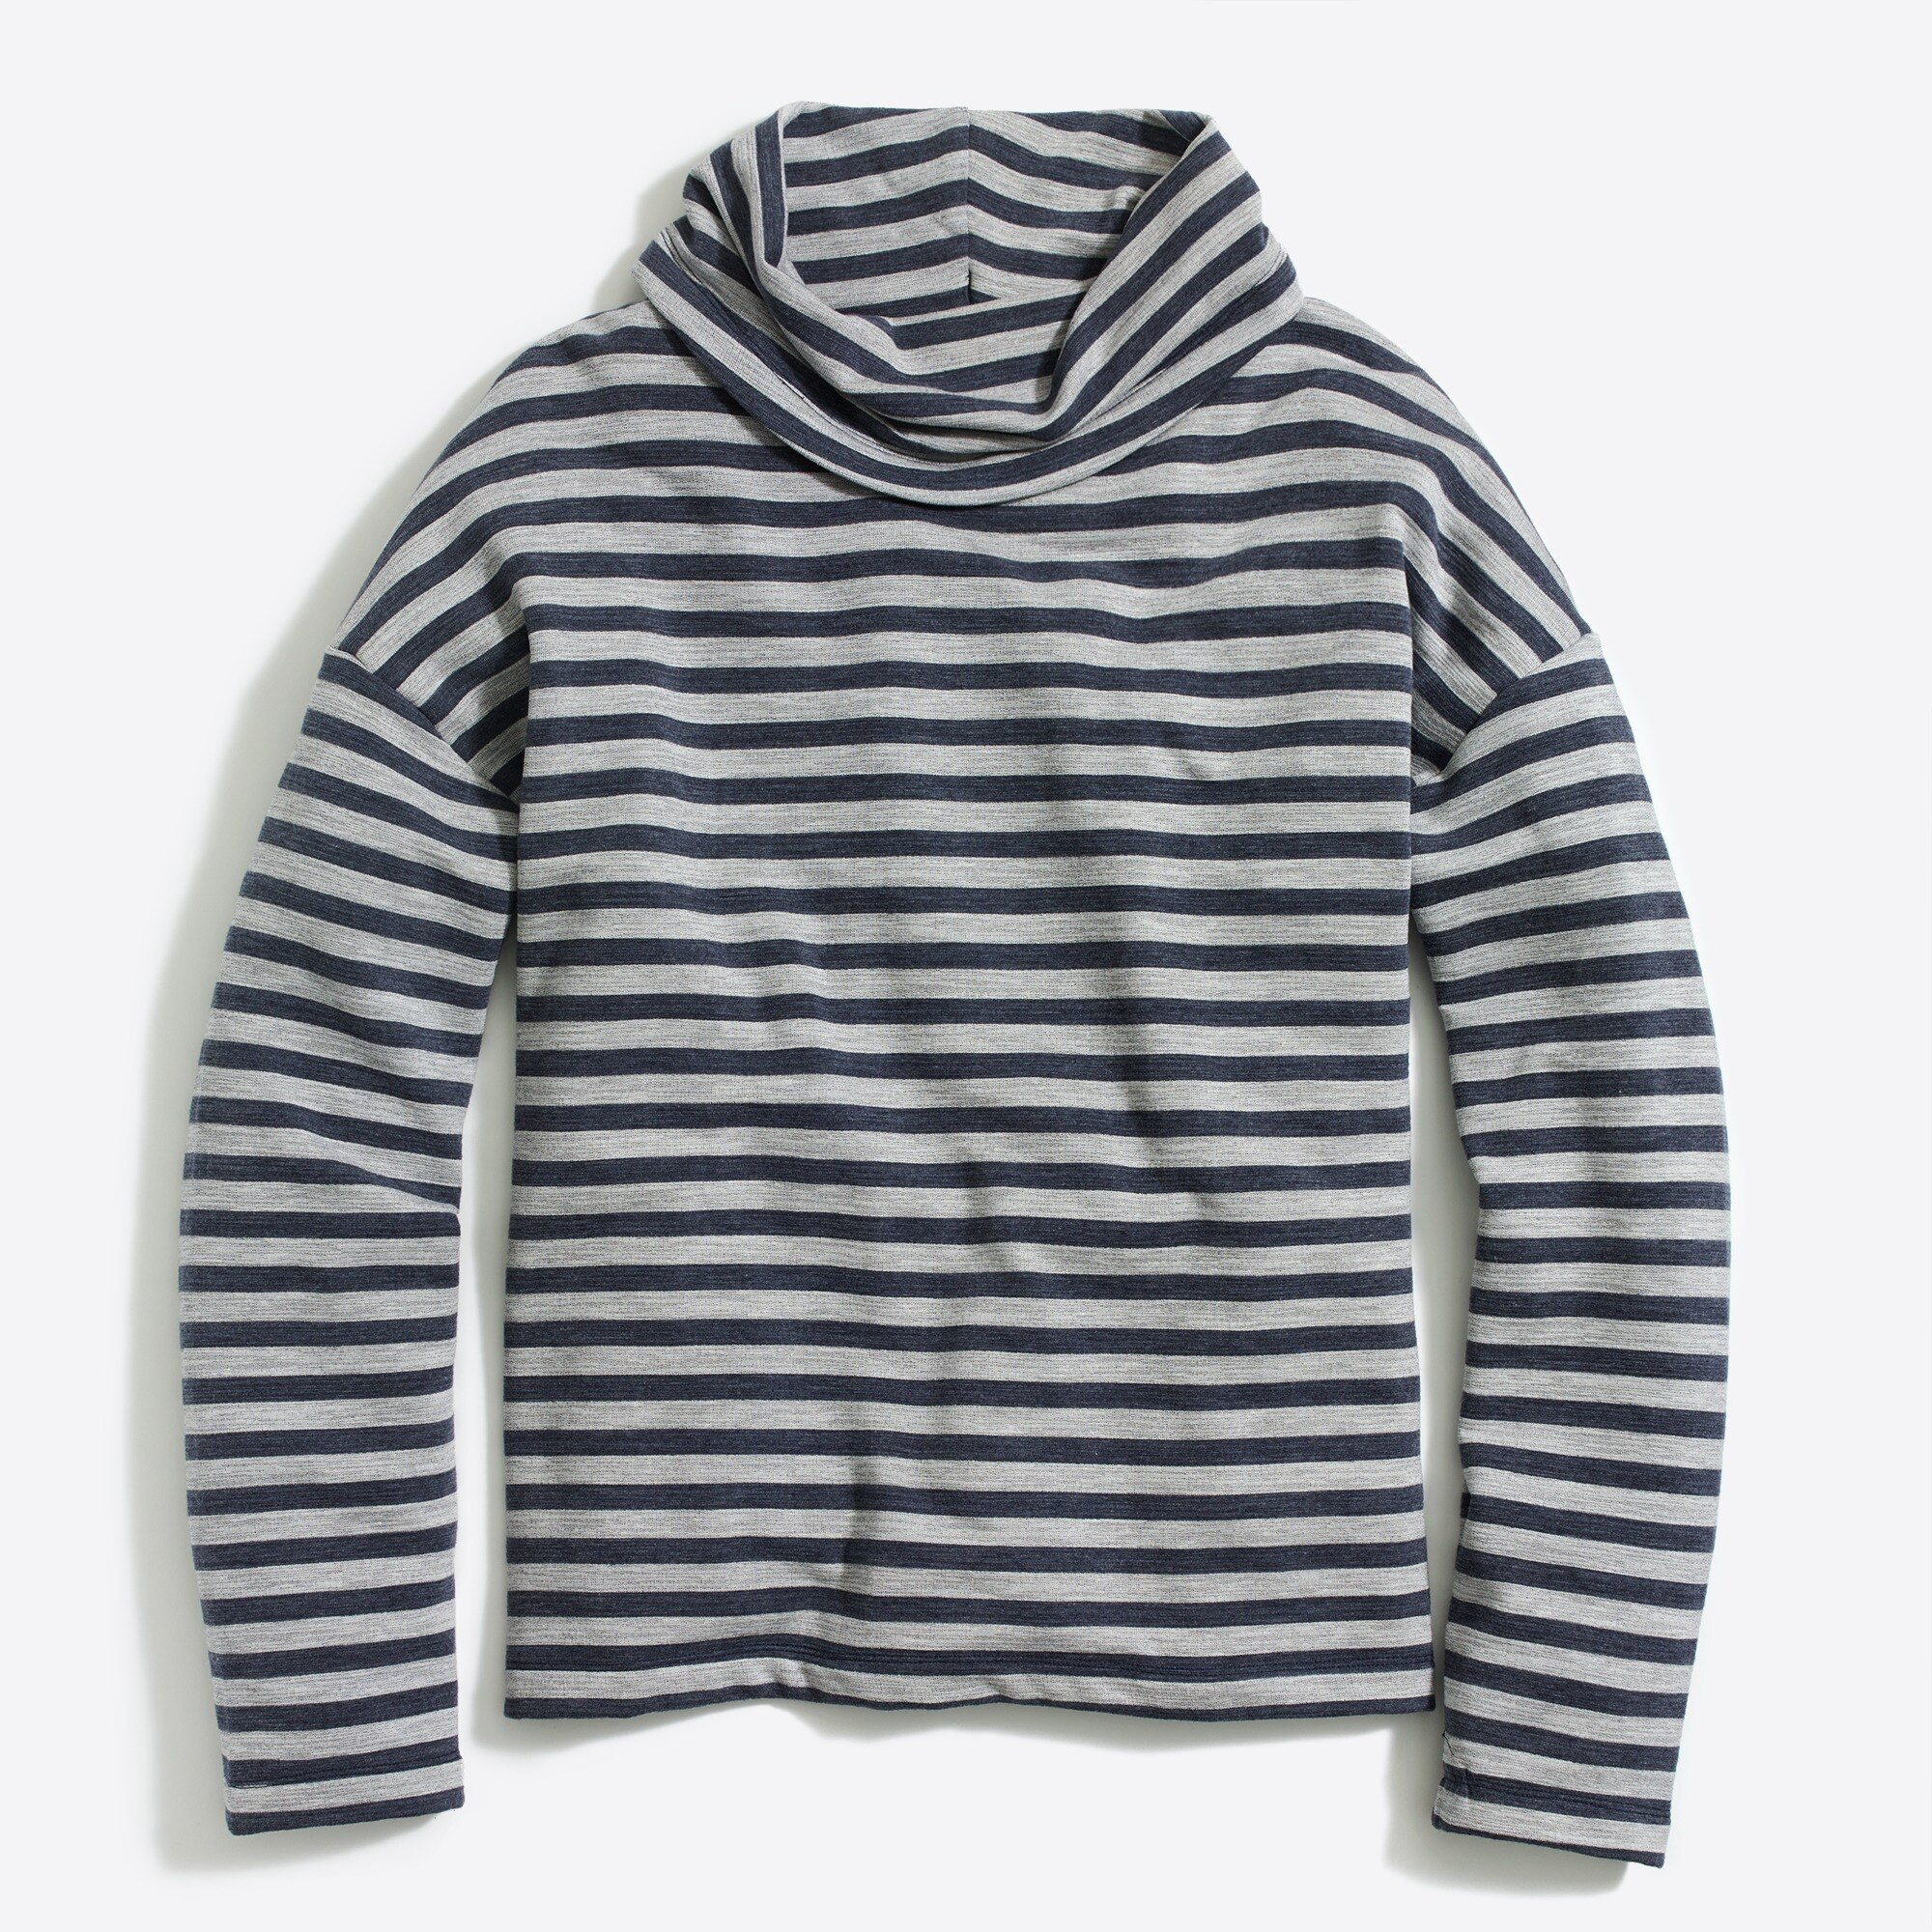 Image 1 for Striped tunnelneck pullover sweatshirt